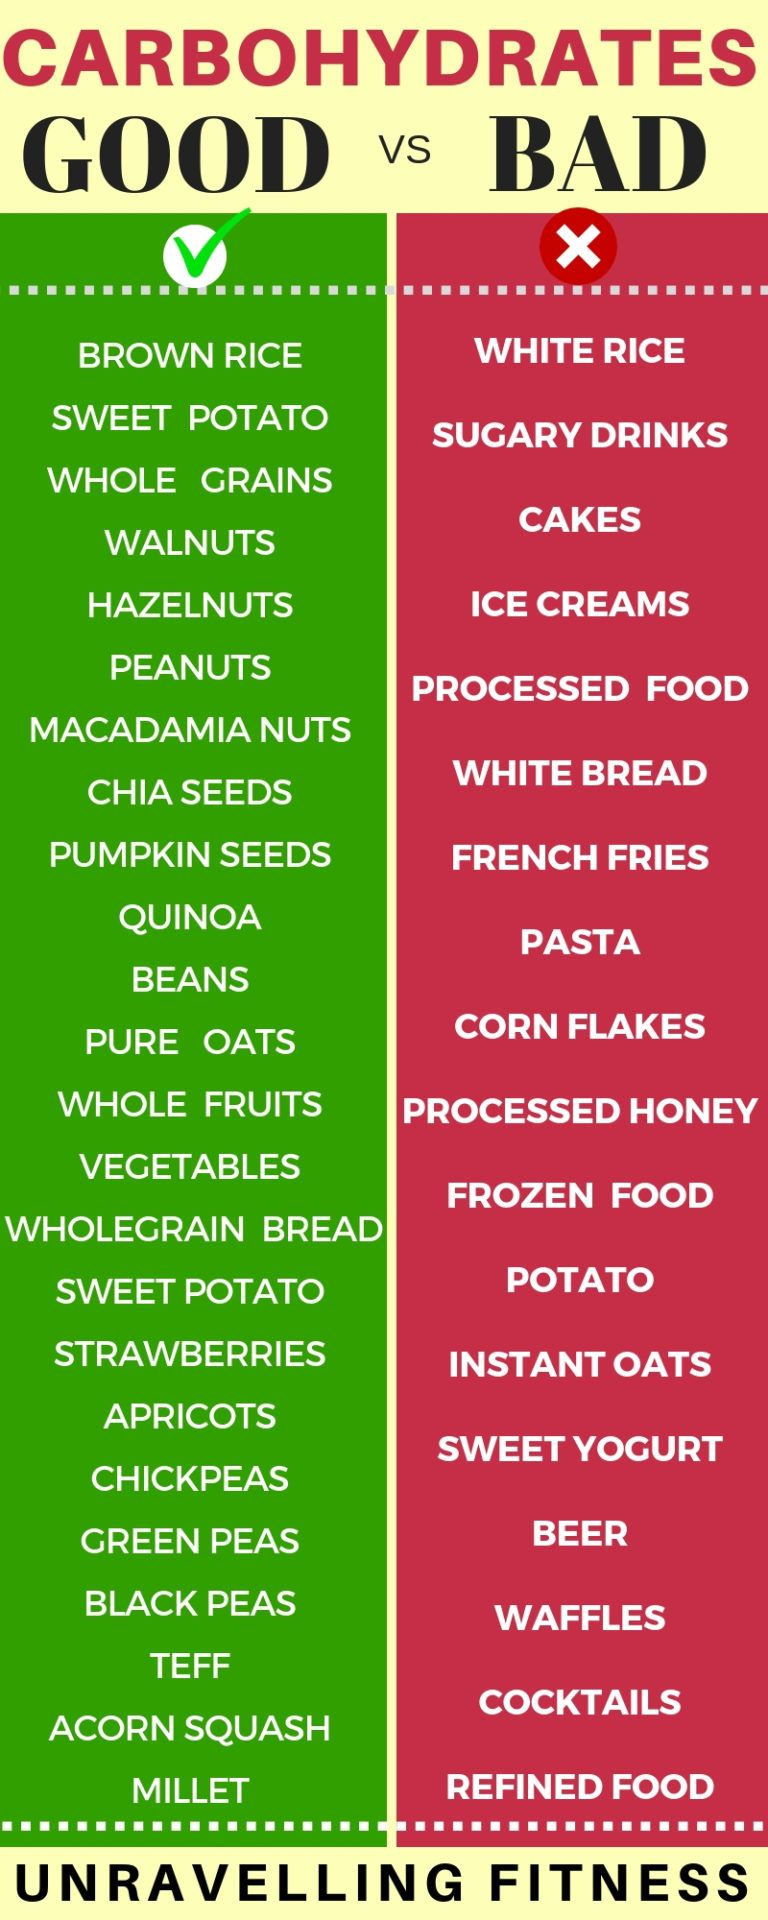 Good carbohydrate and bad carbohydrate list